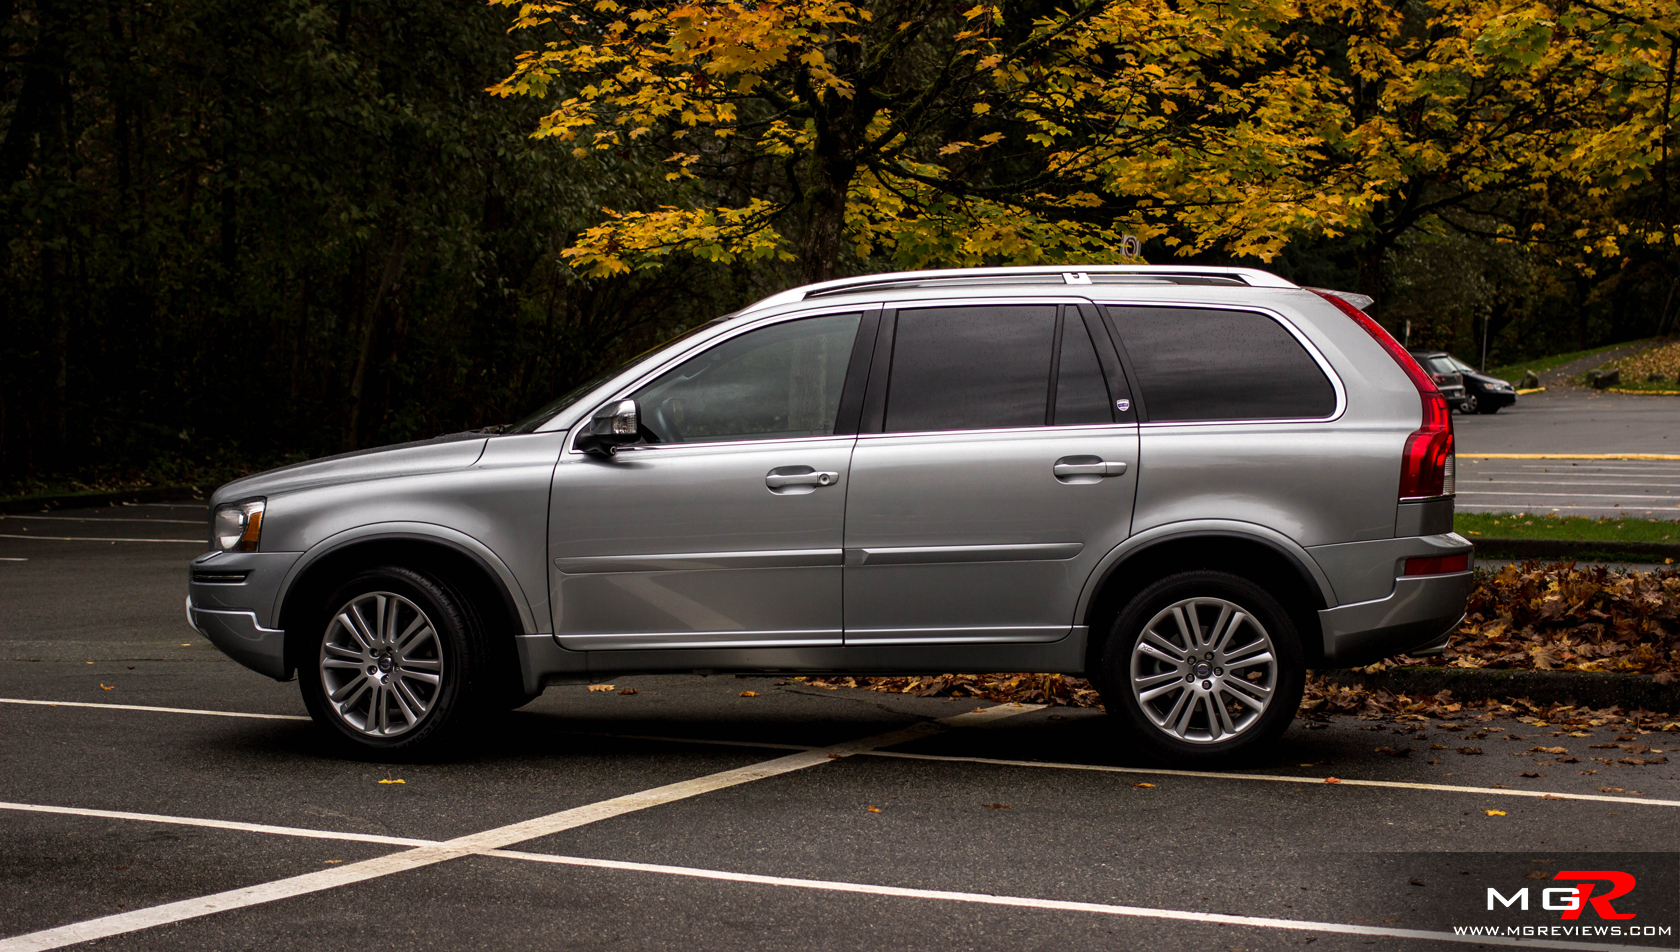 review 2014 volvo xc90 m g reviews. Black Bedroom Furniture Sets. Home Design Ideas